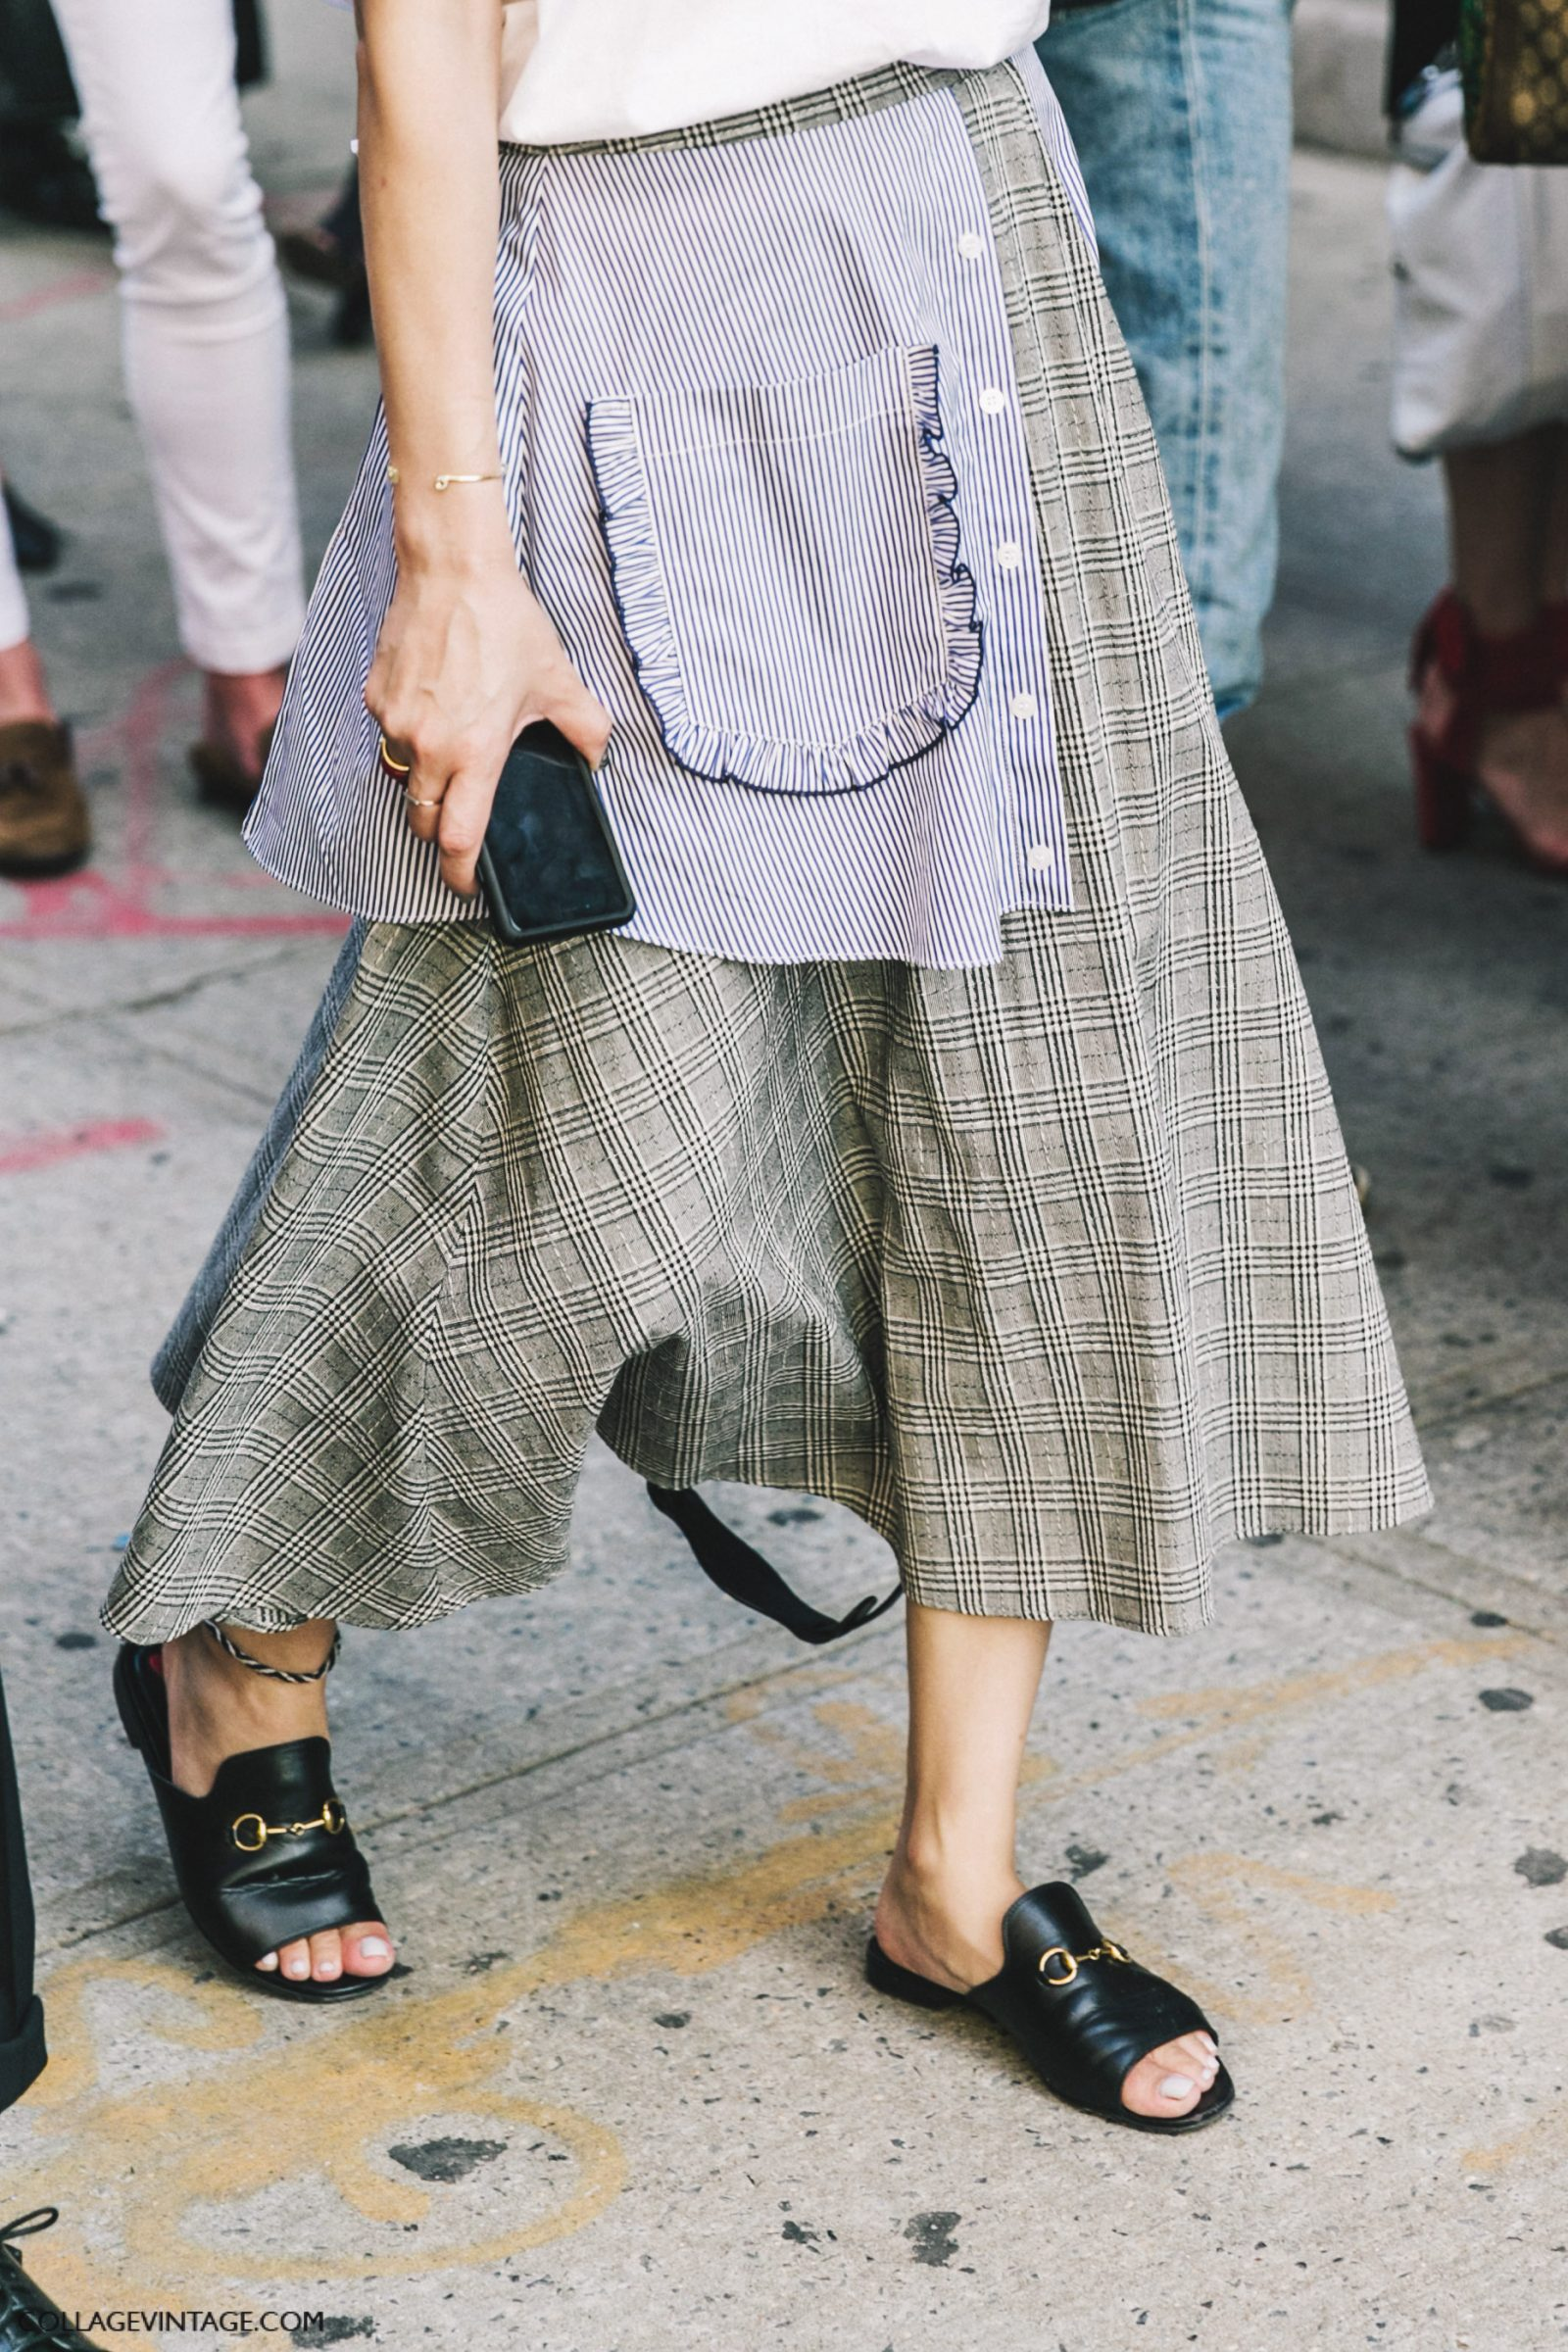 nyfw-new_york_fashion_week_ss17-street_style-outfits-collage_vintage-gucci_sandals